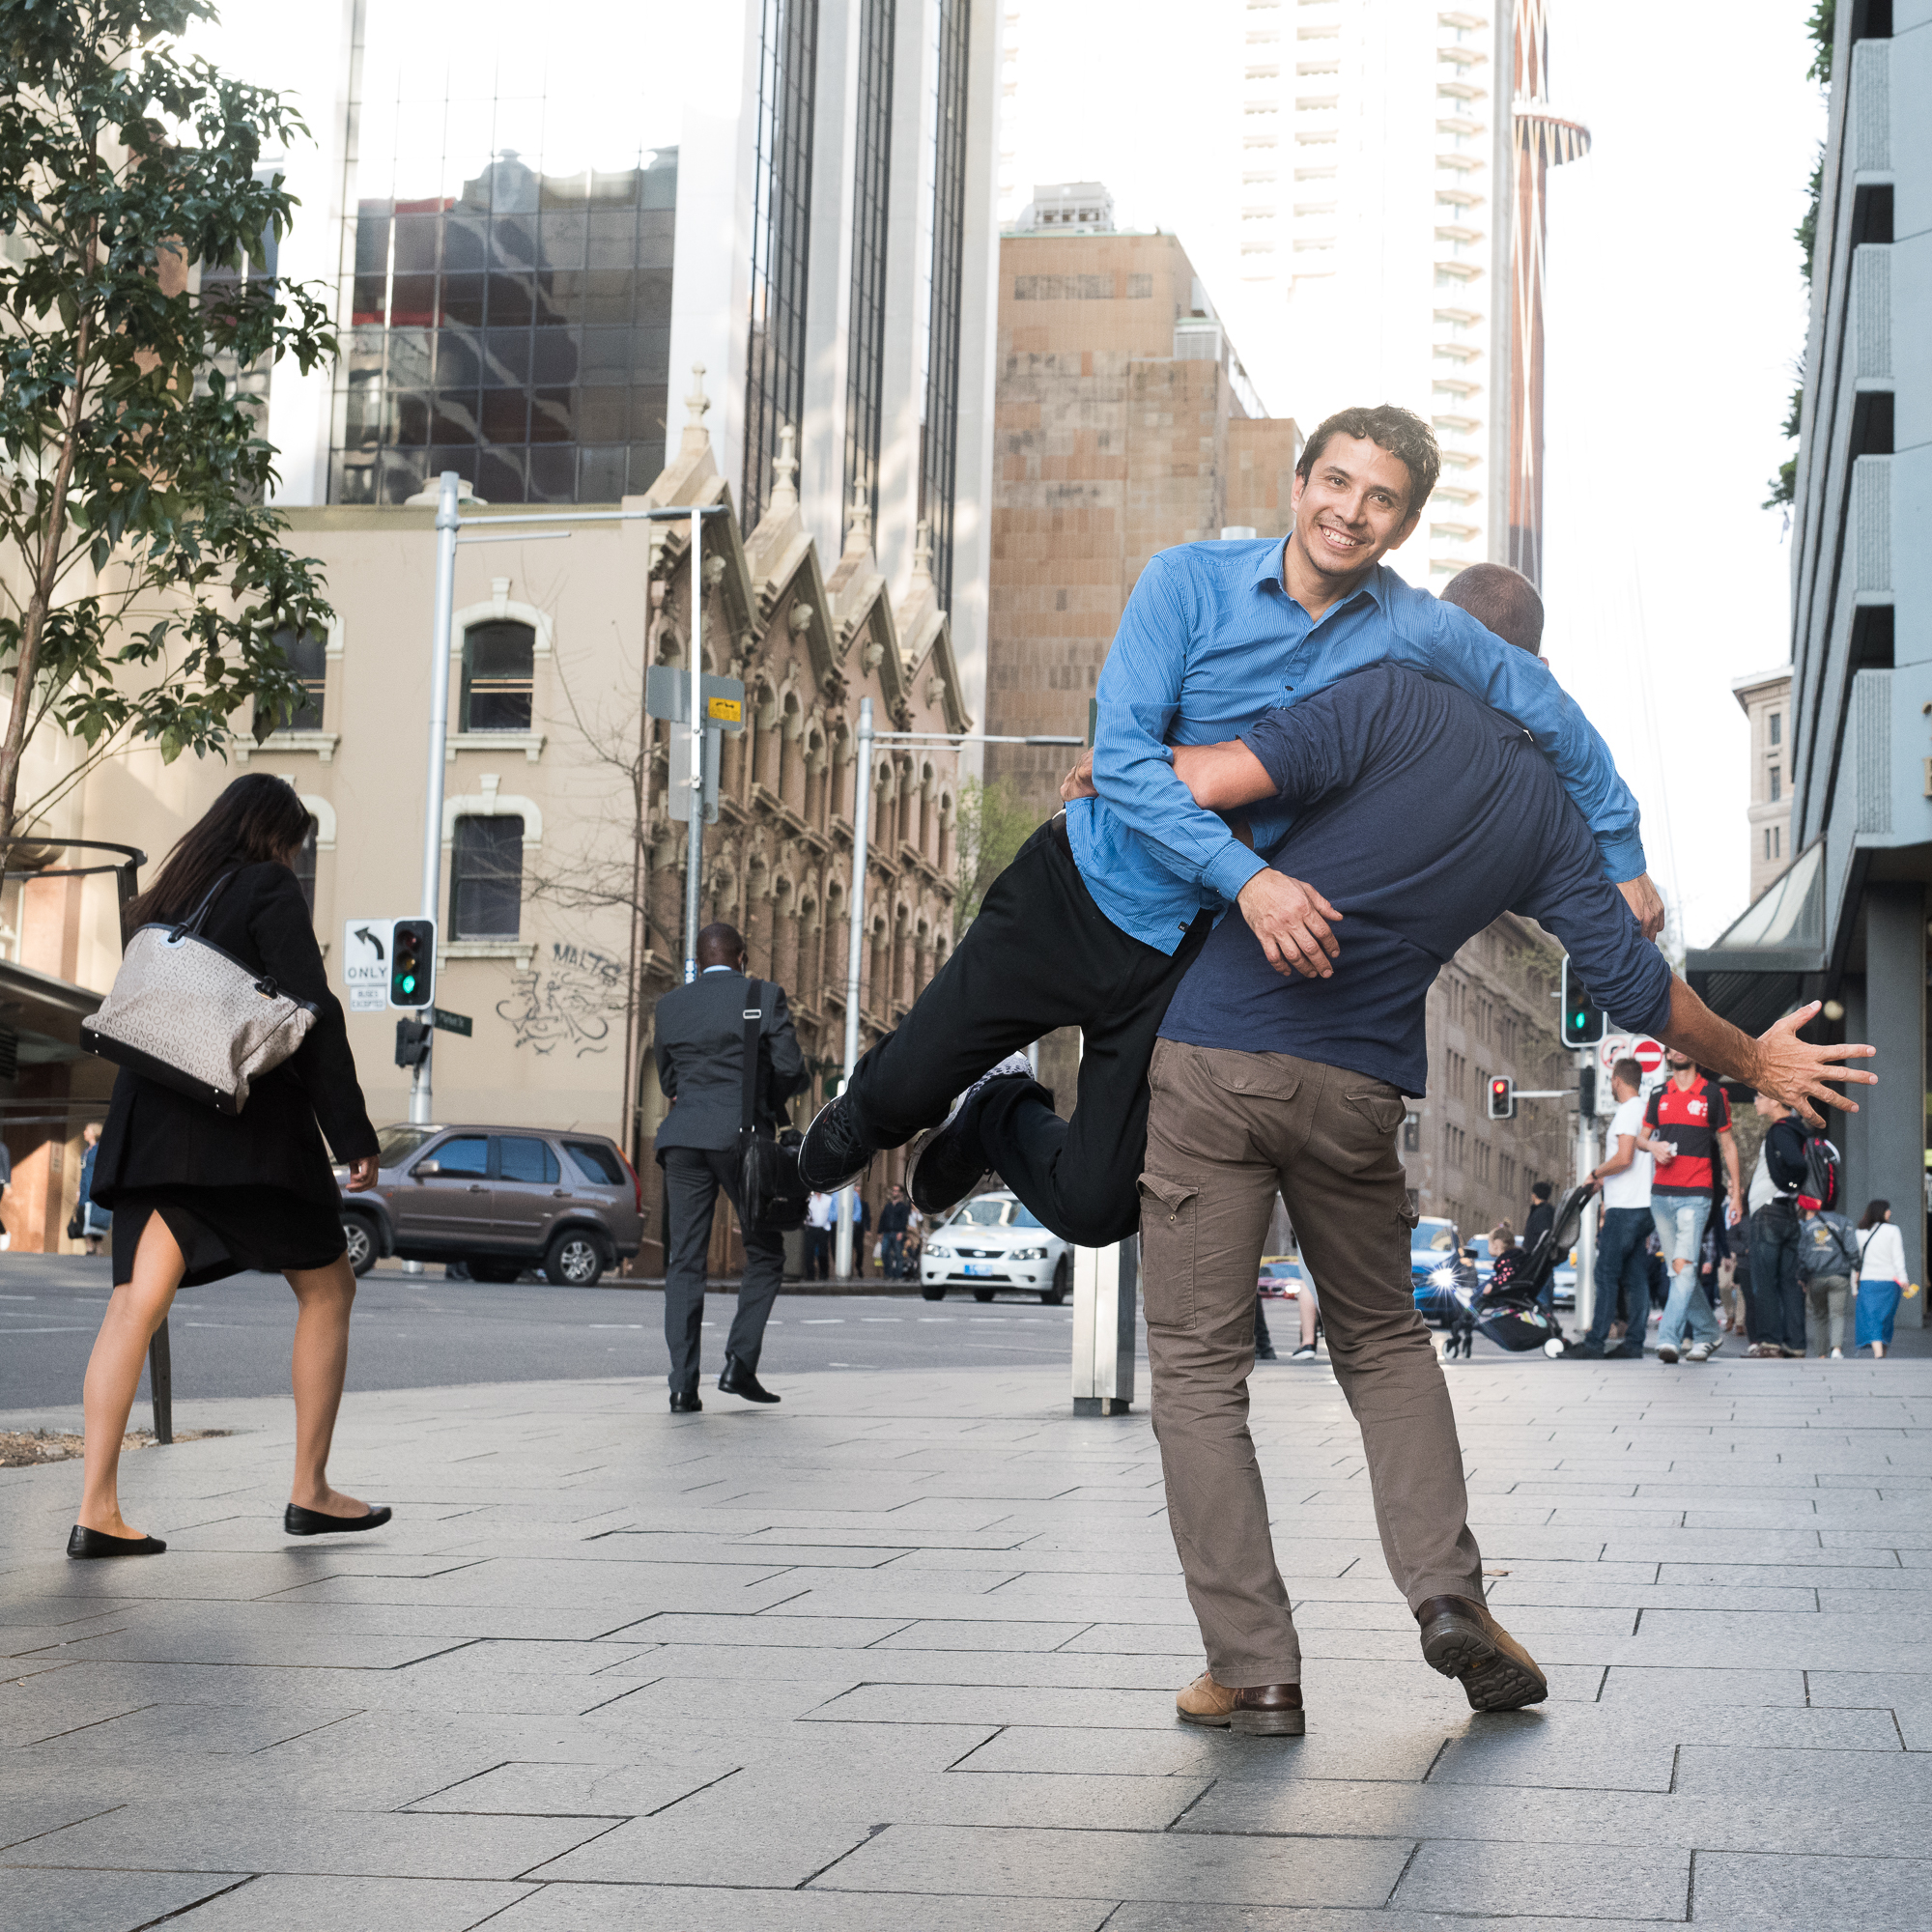 Street Sydney - With a girl and a grey bag